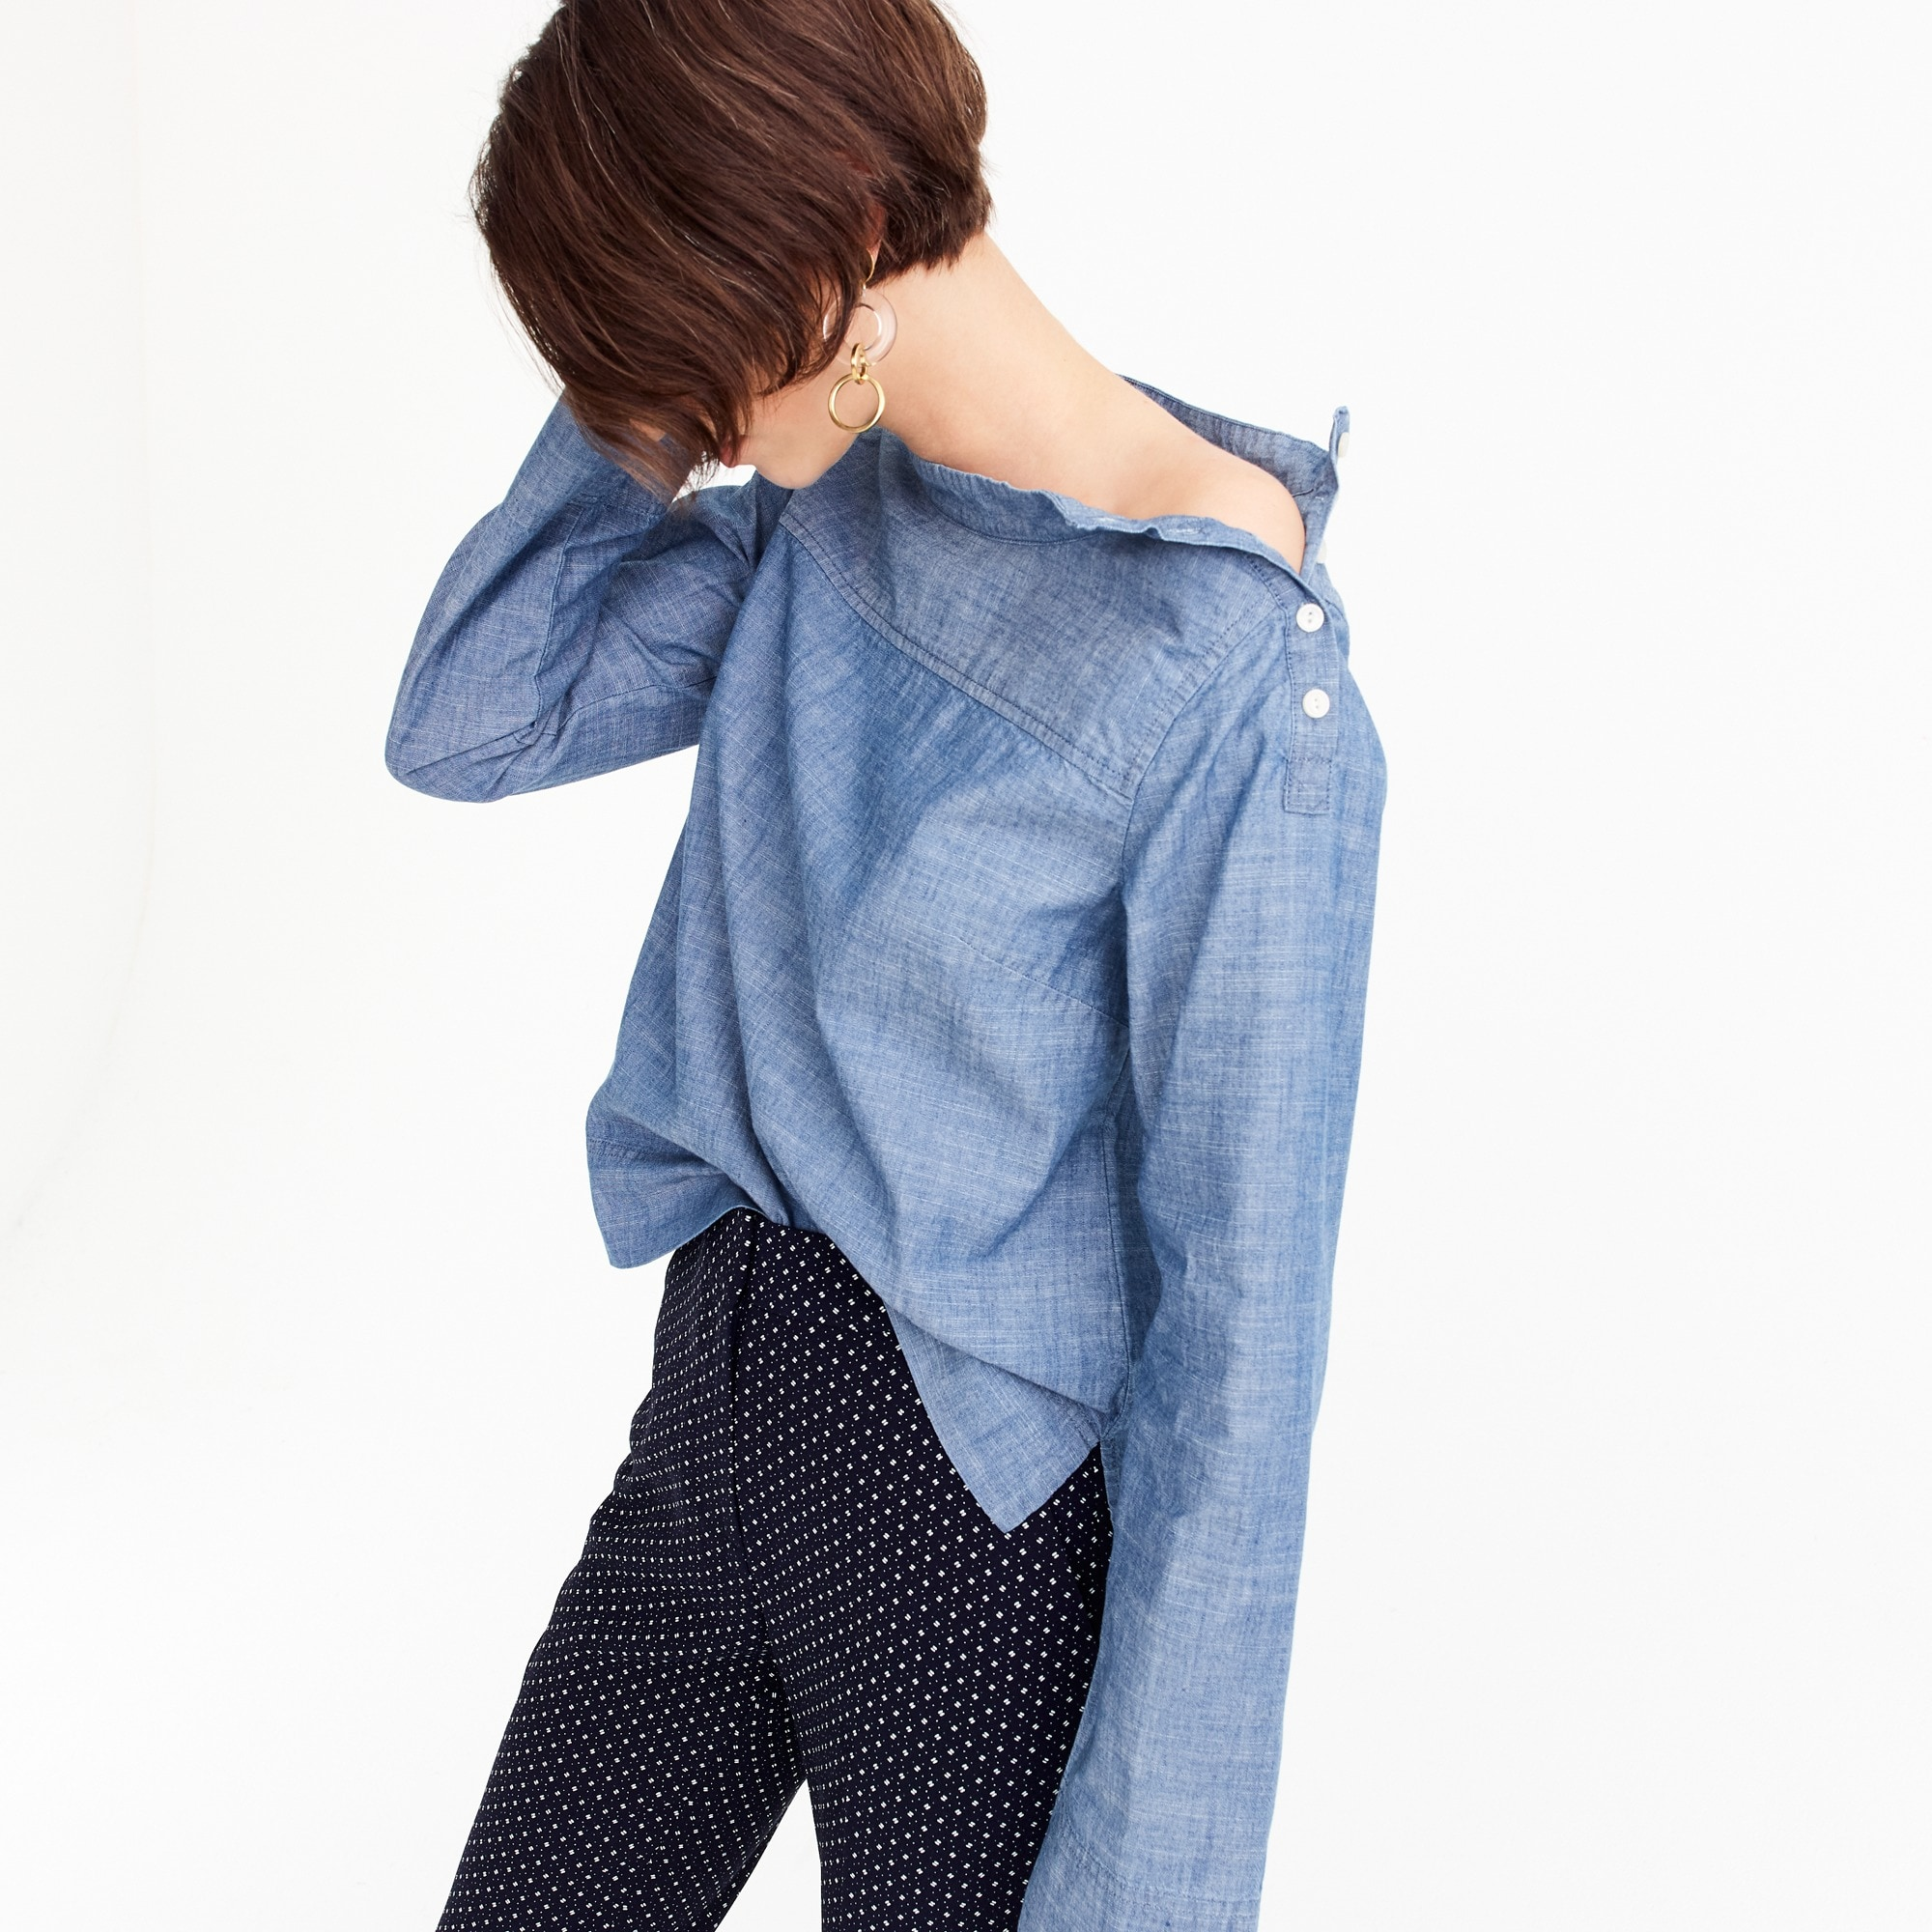 Funnelneck shirt in chambray